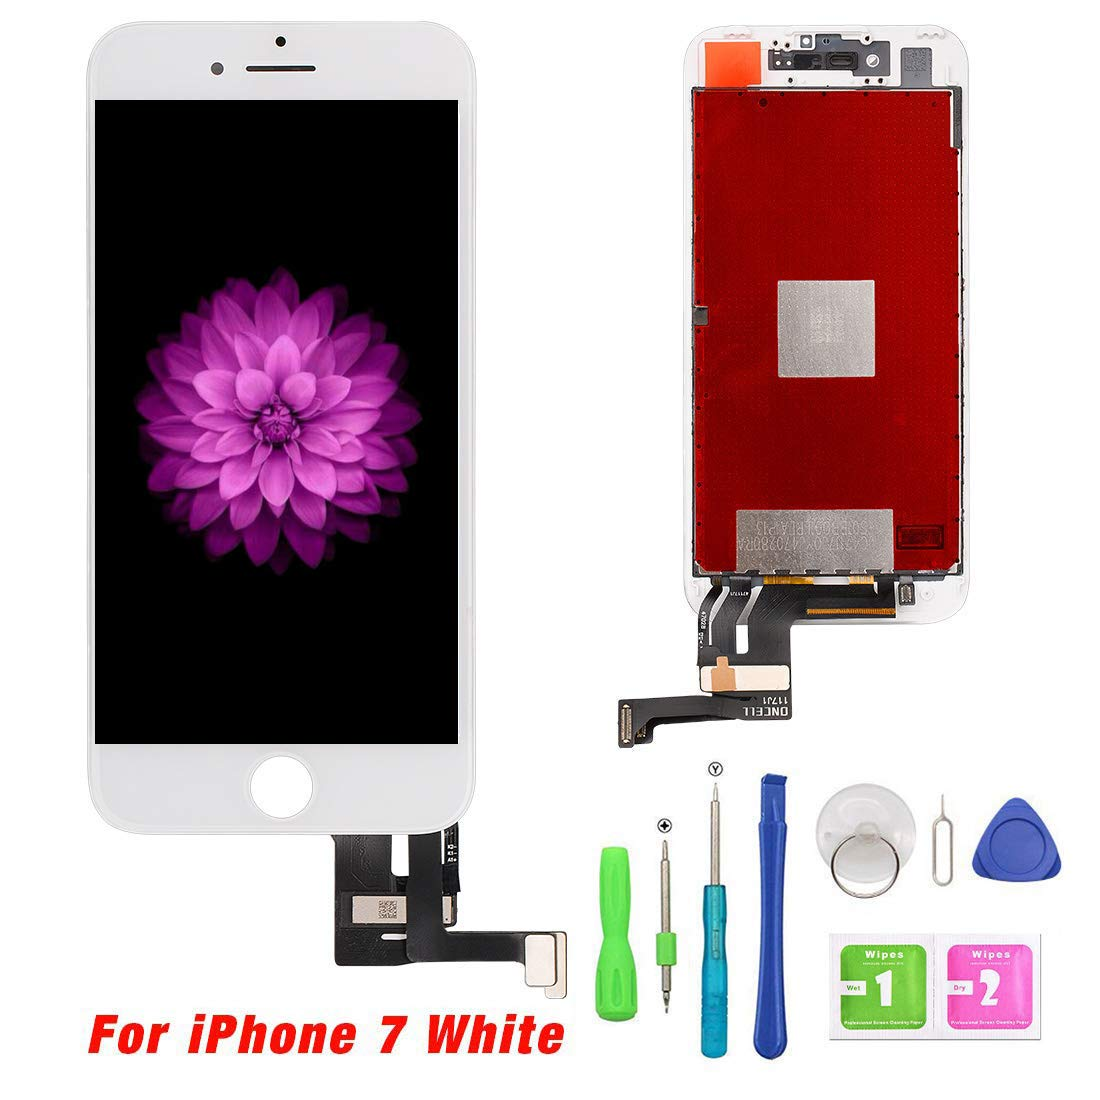 QTlier Replacement Screen for iPhone 7 4.7 White LCD Touch Display Screen Digitizer Frame Assembly Replacement with Repair Tool Set